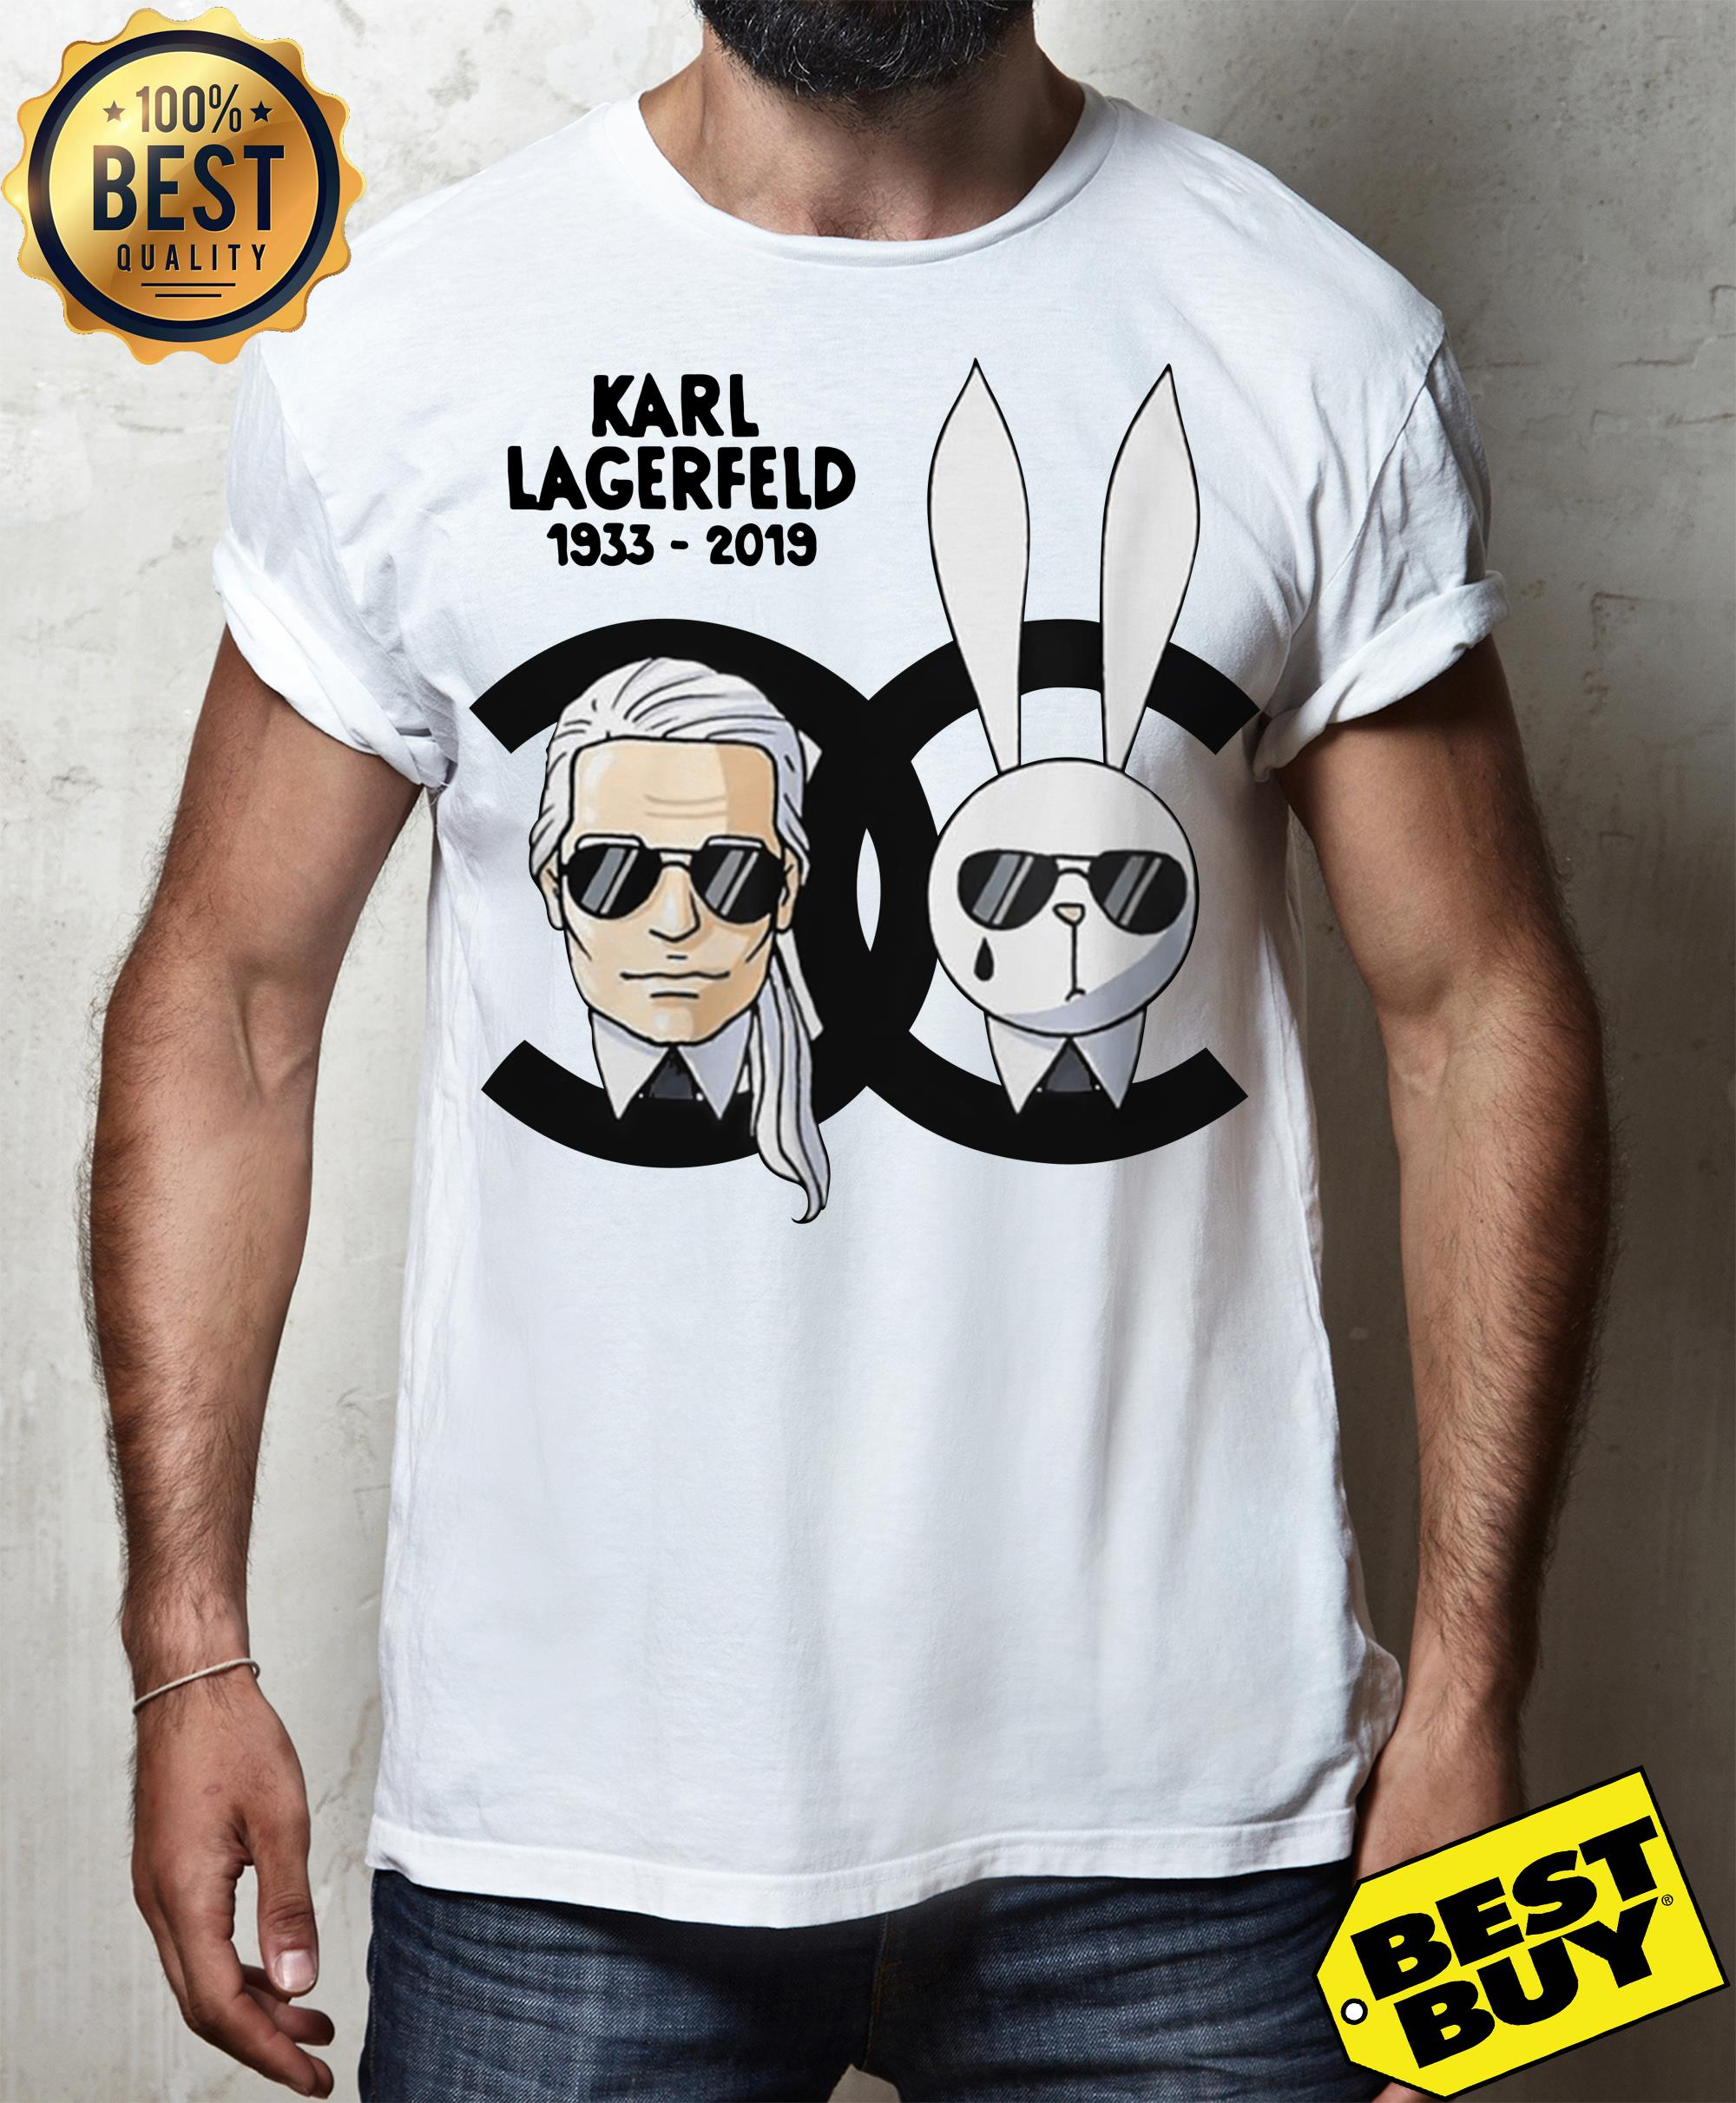 Rip Karl Lagerfeld 1933-2019 and rabbit Chanel shirt